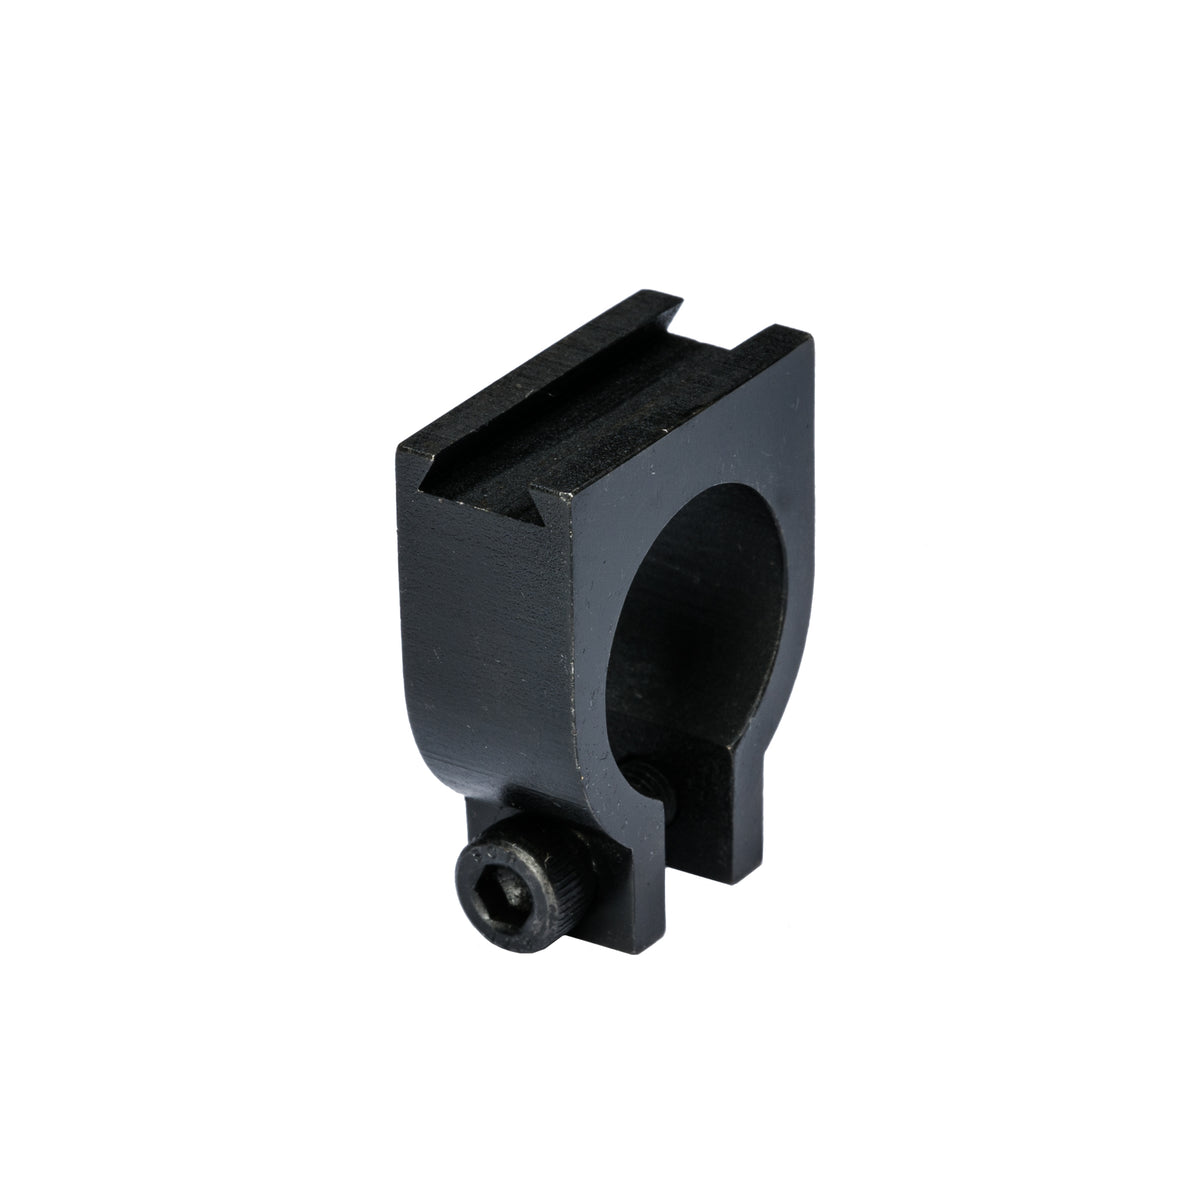 Round Barrel Offset mount - Barrel Clamp Ring with dovetail